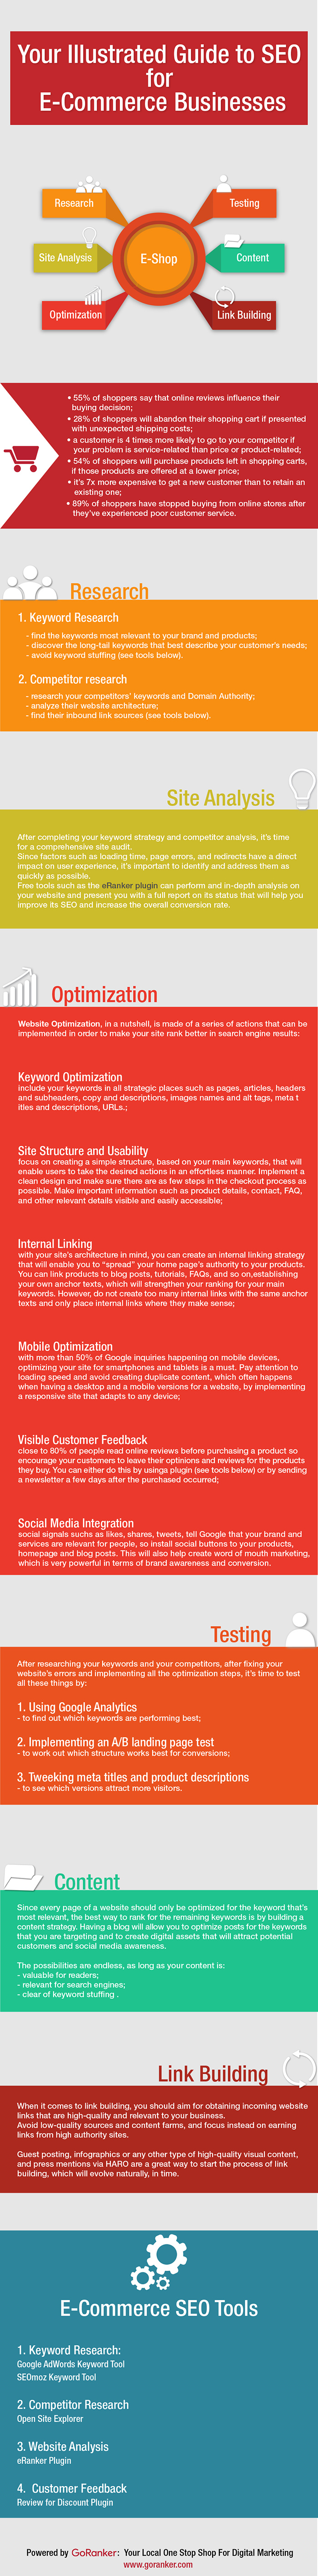 SEO optimization for e-commerce business infographic